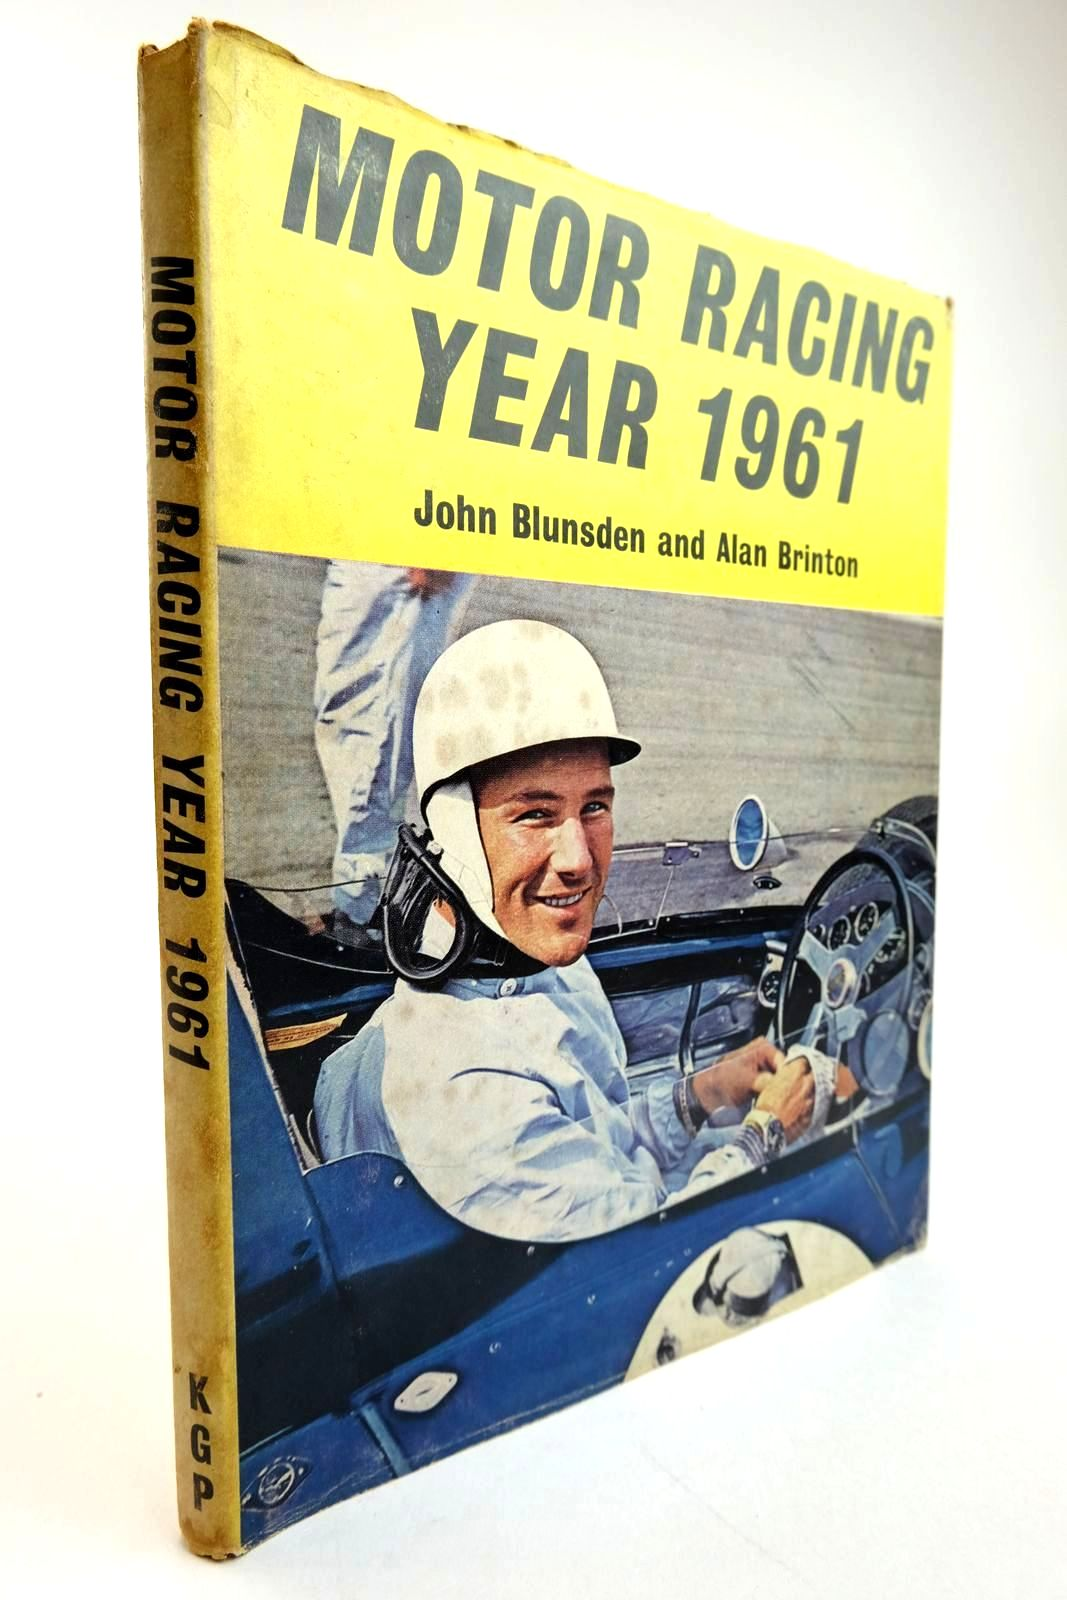 Photo of MOTOR RACING YEAR 1961 written by Blunsden, John Brinton, Alan published by Knightsbridge Publications (STOCK CODE: 2134307)  for sale by Stella & Rose's Books